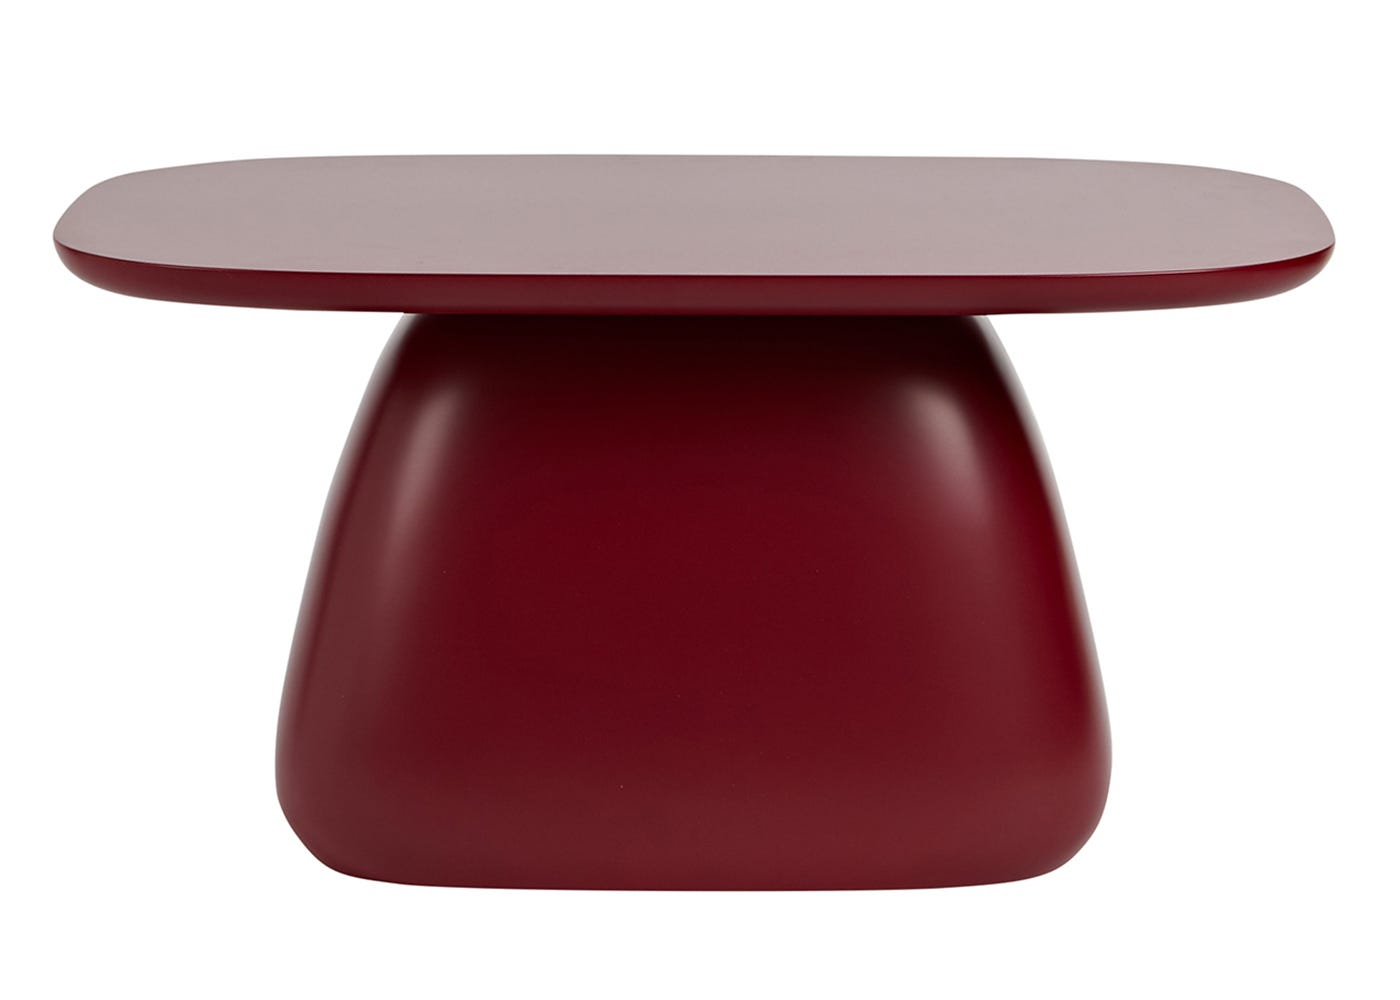 As shown: Cliff Coffee Table in tangerine